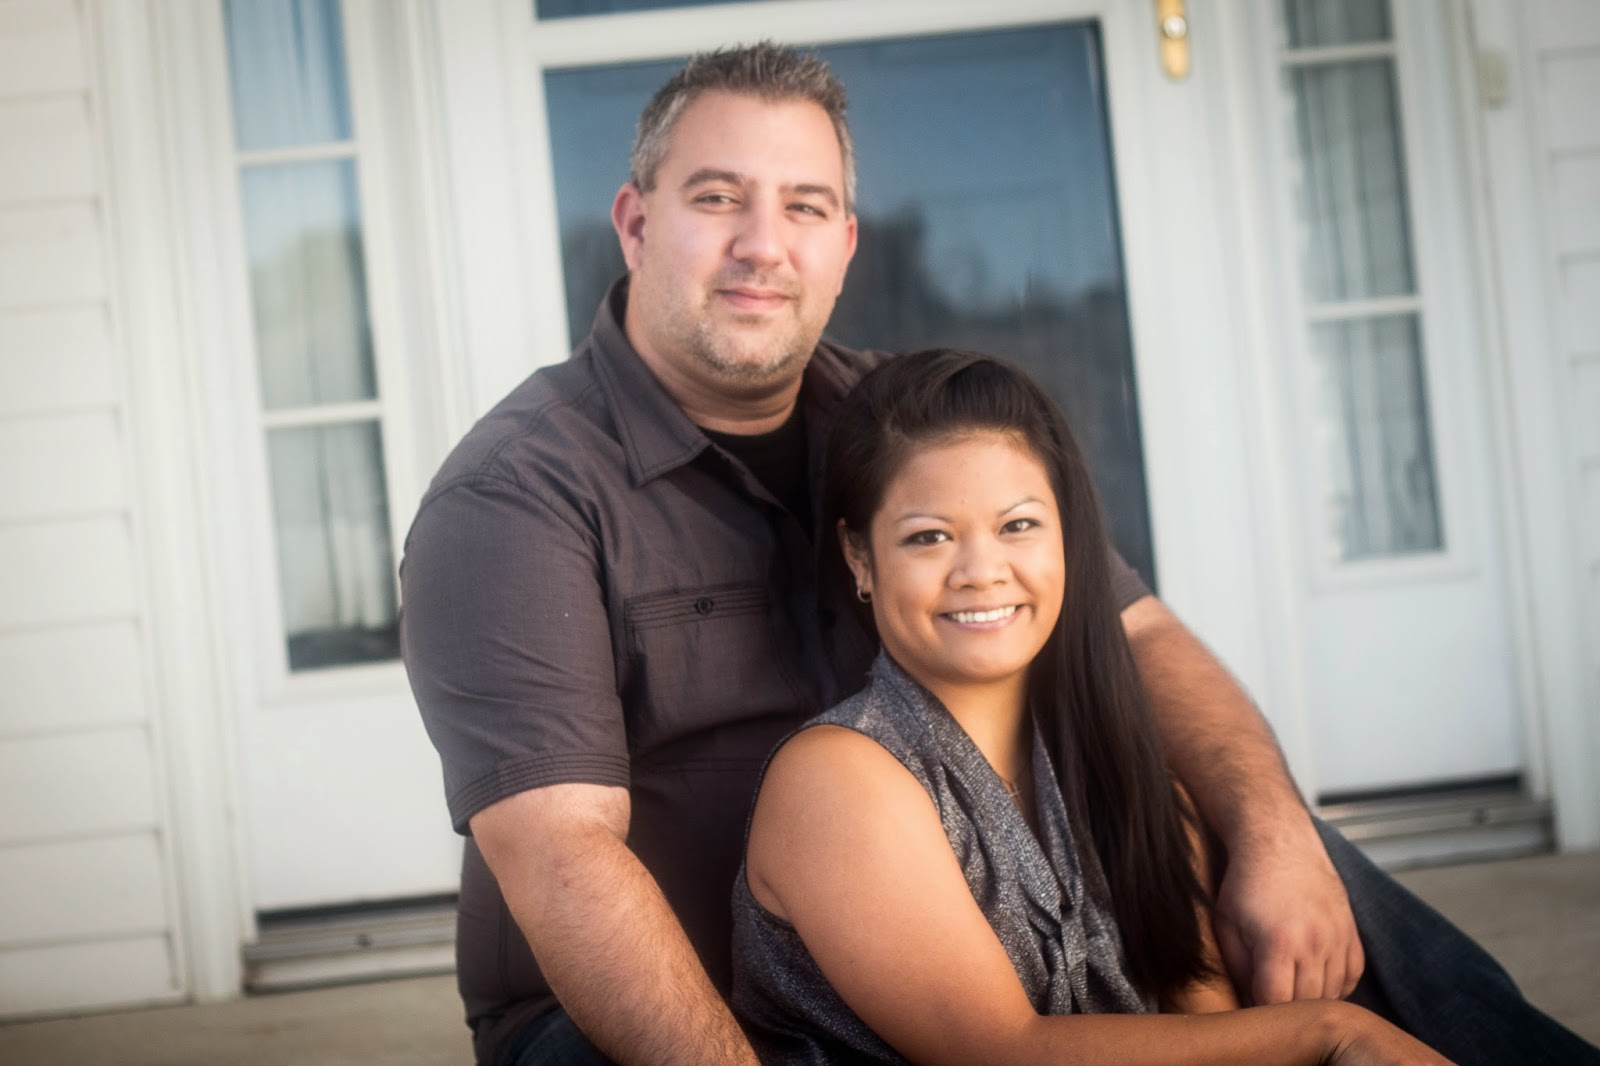 Justin Amy Our Family Engagement Session Greenville NC Photographer Bryant Tyson Photography 1